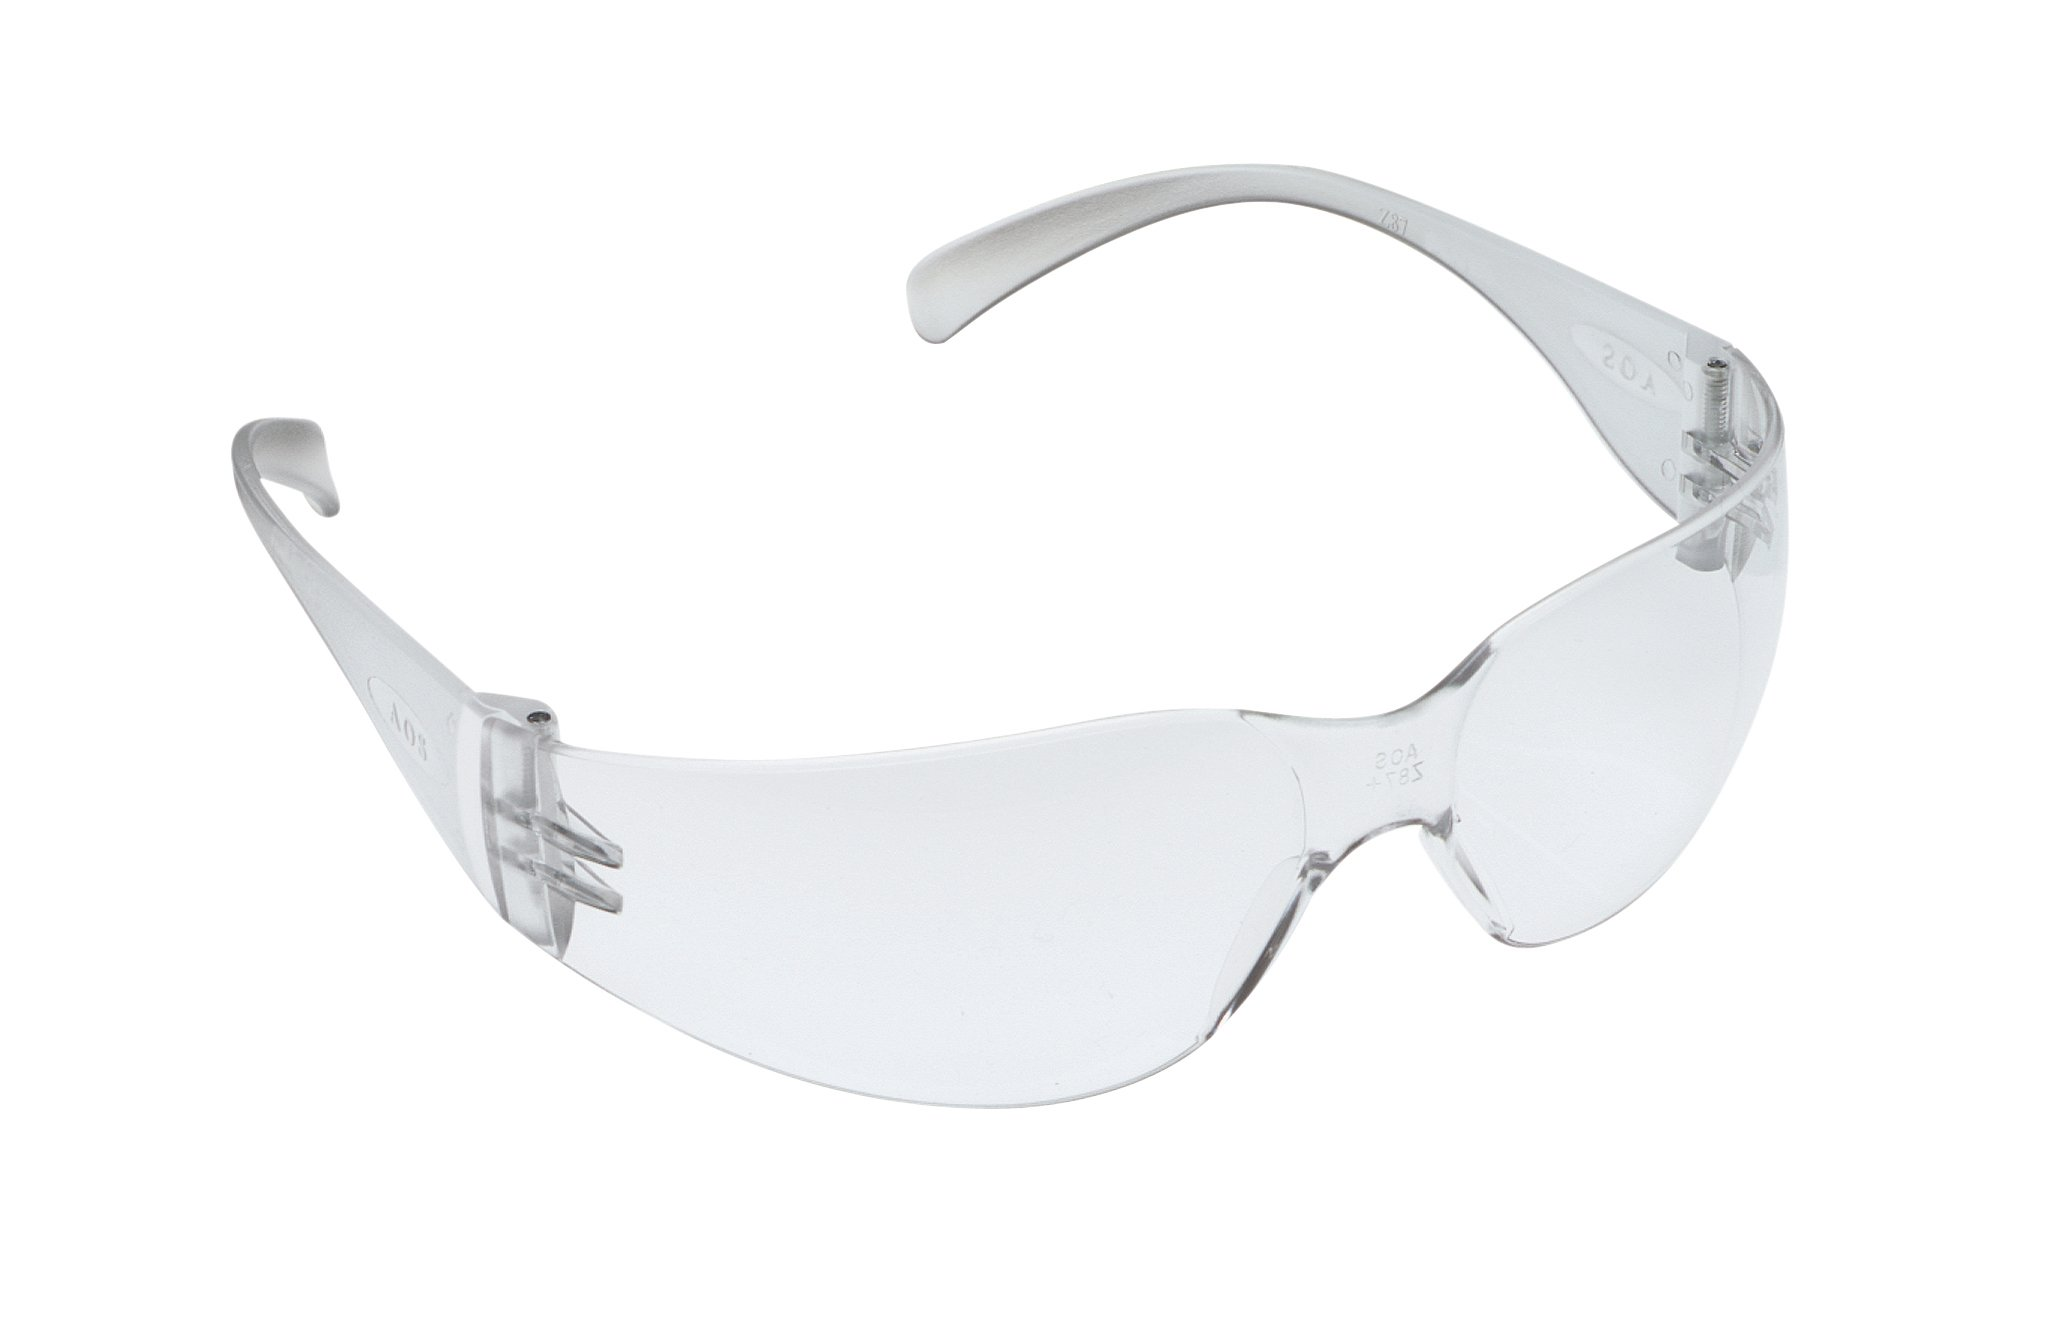 3M Virtua Protective Eyewear, 11329-00000-20 Clear Anti-Fog Lens, Clear Temple (Pack of 20) by 3M Personal Protective Equipment